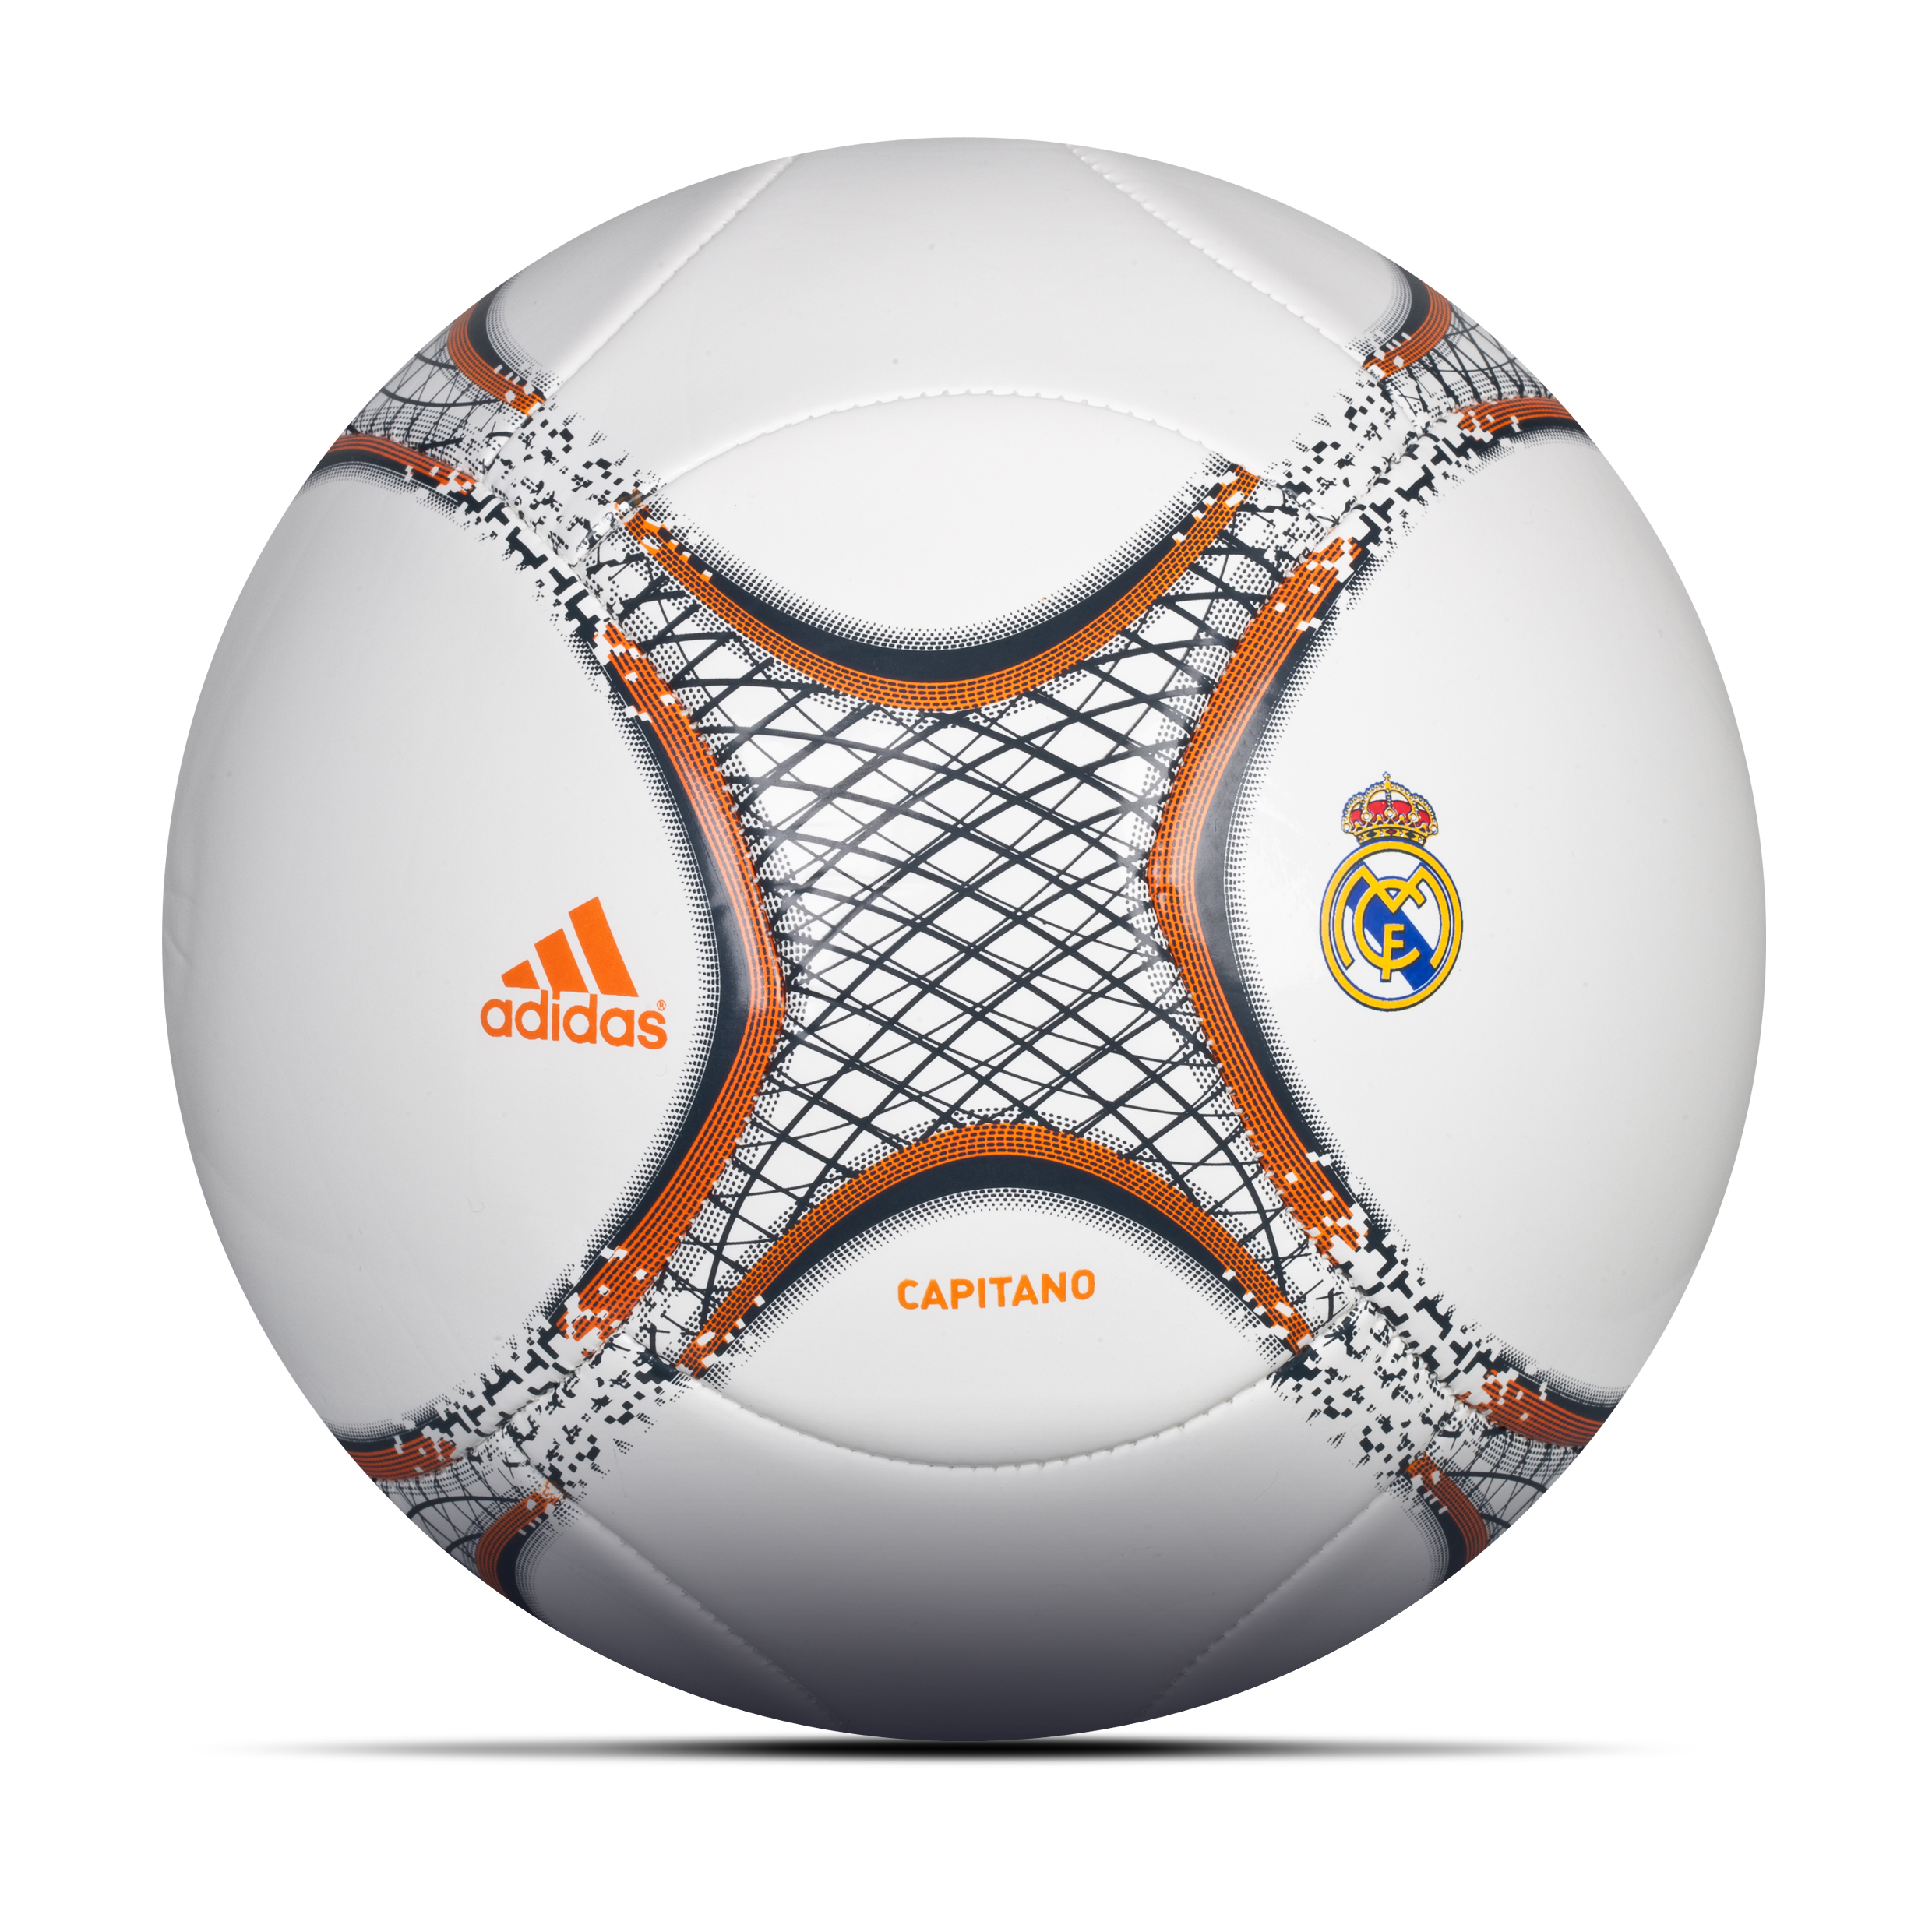 Real Madrid Capitano Football White